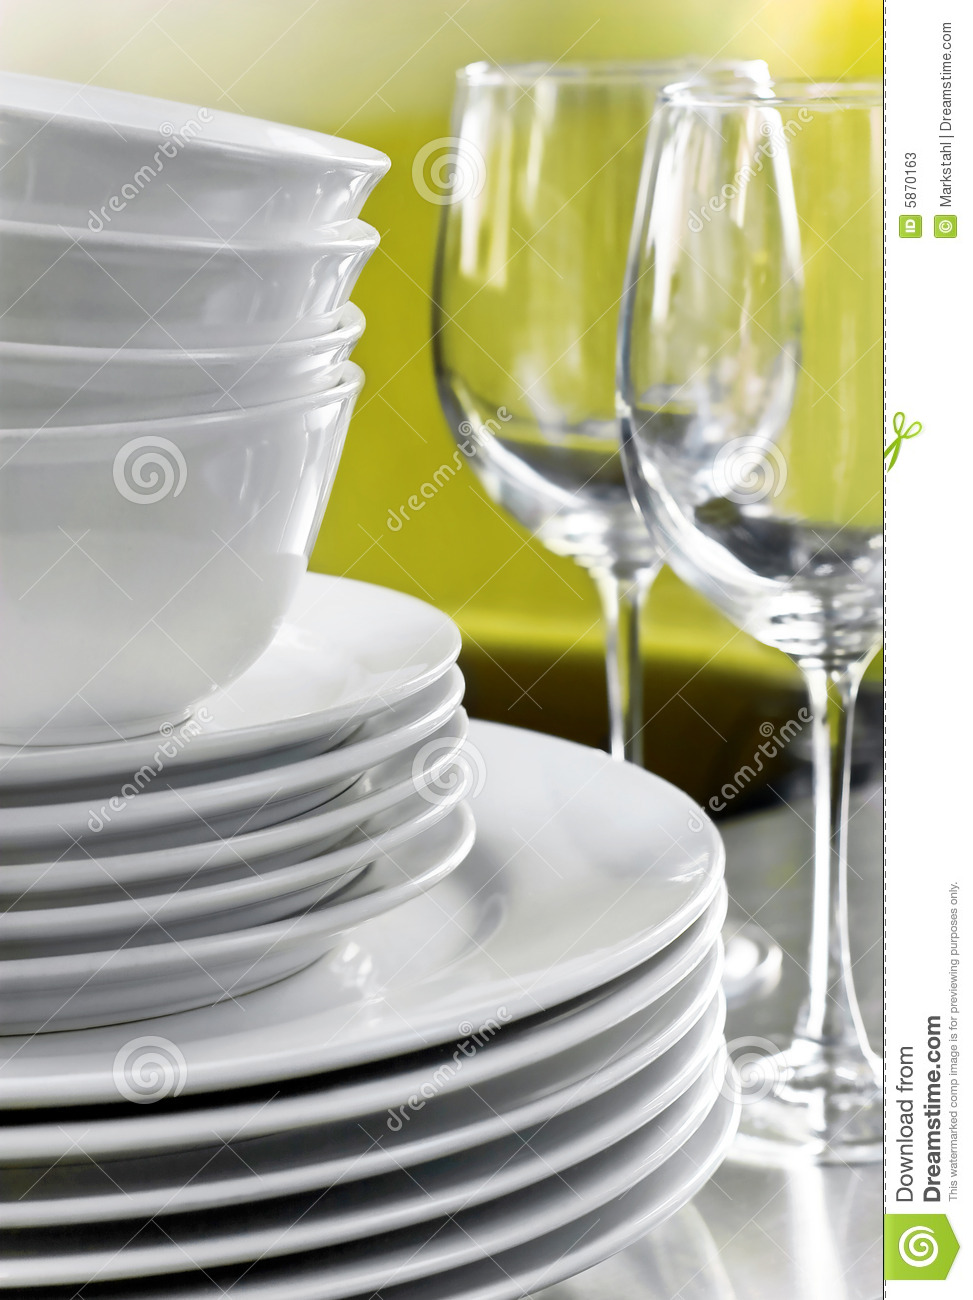 Plain White Plates Bowls And Crystal Wine Glasses Stock